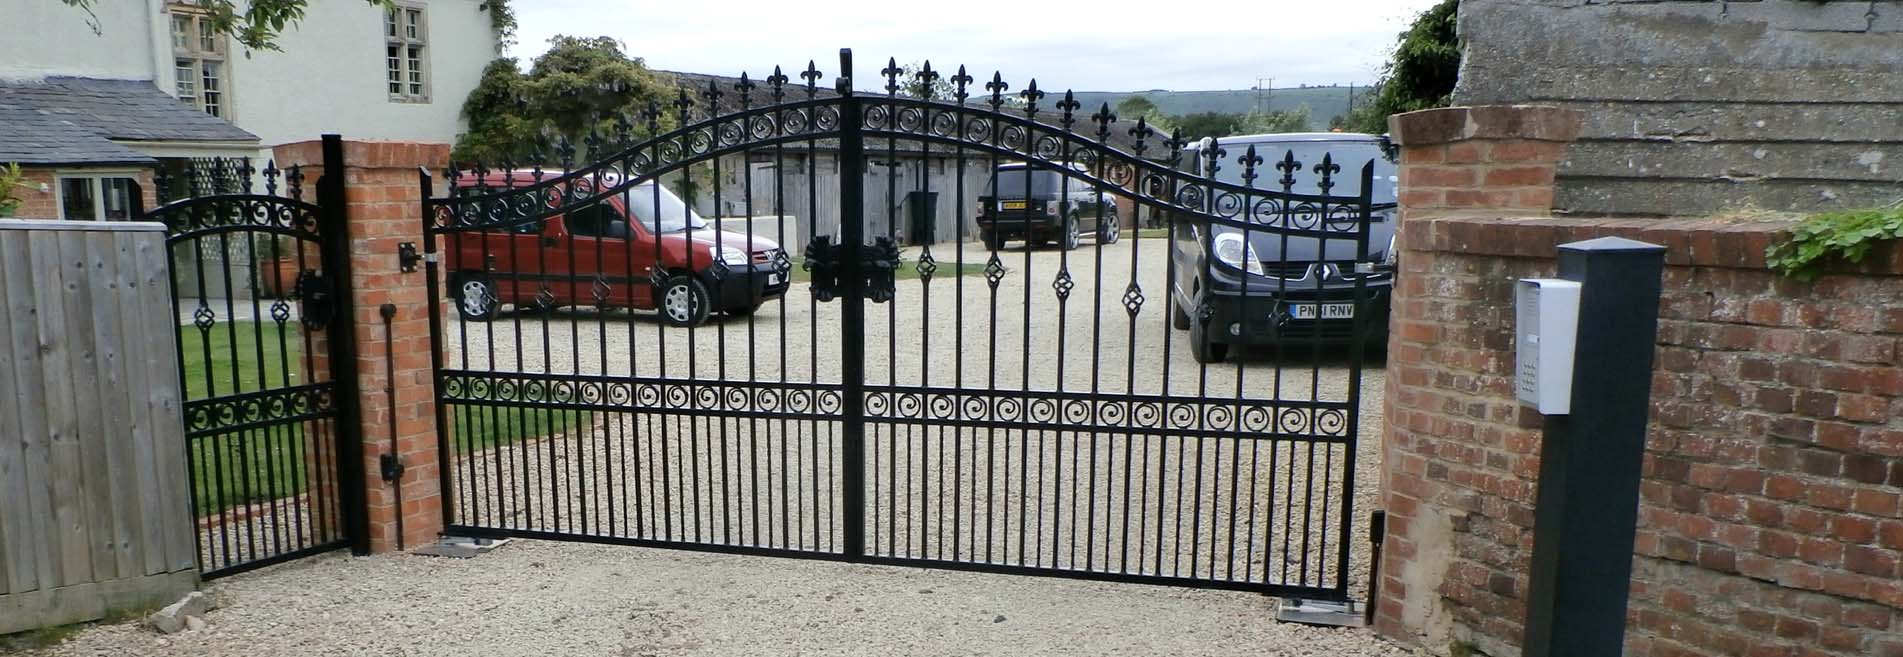 gate automation in wiltshire